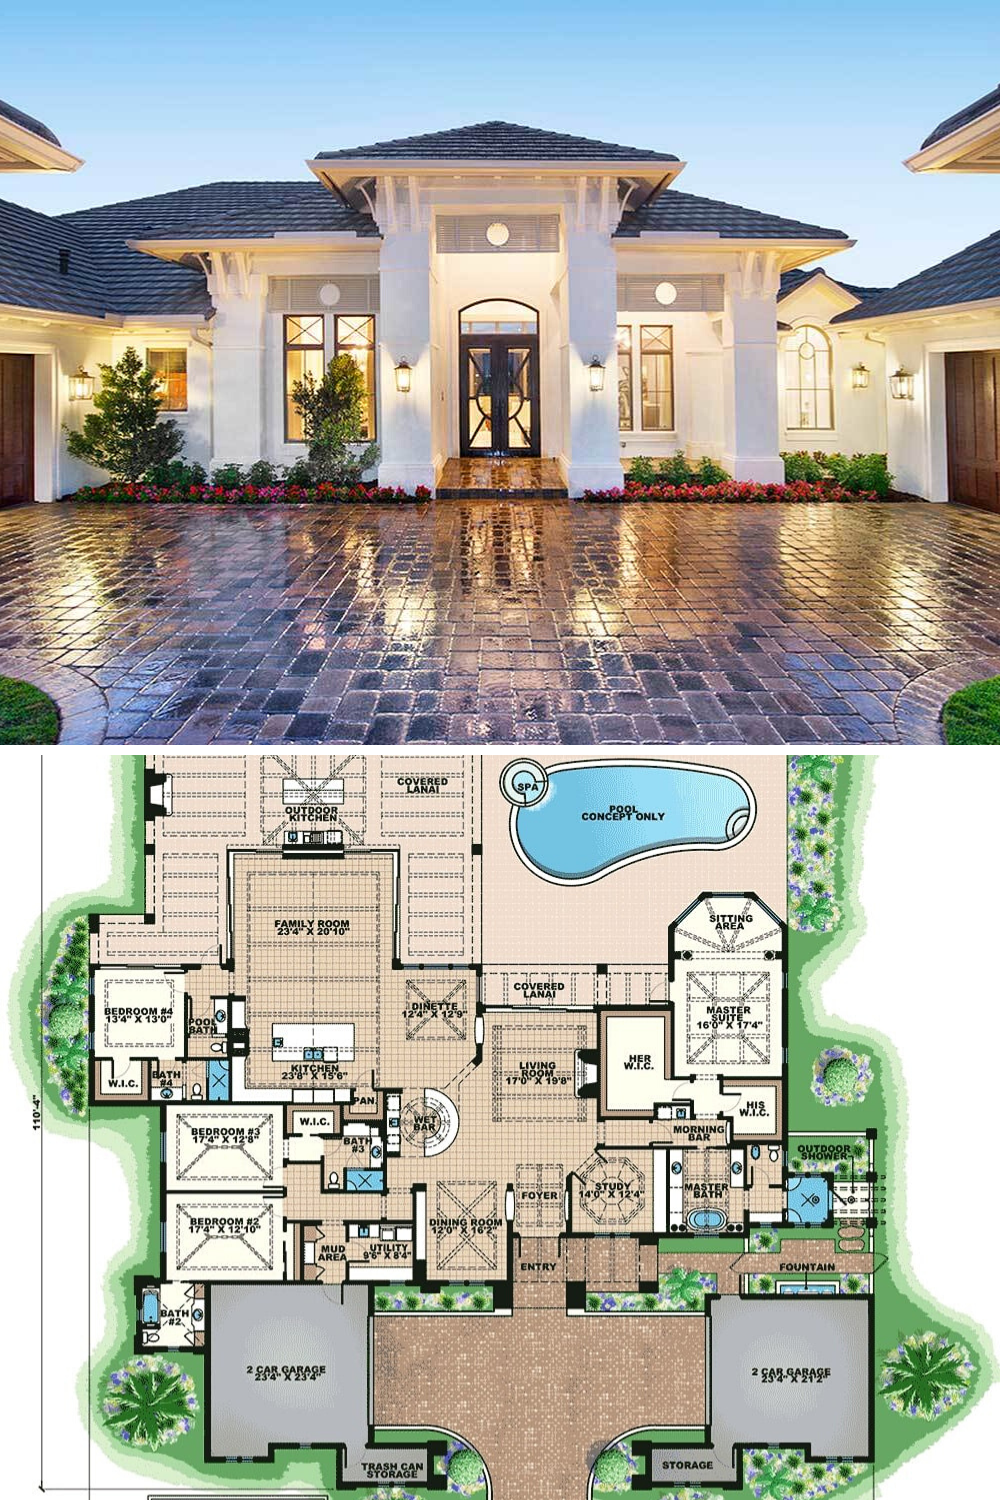 Landscape Architecture Modern Mediterranean House Plans Modern Mediterranean House Plans Medite House Plans Mansion Florida House Plans My House Plans